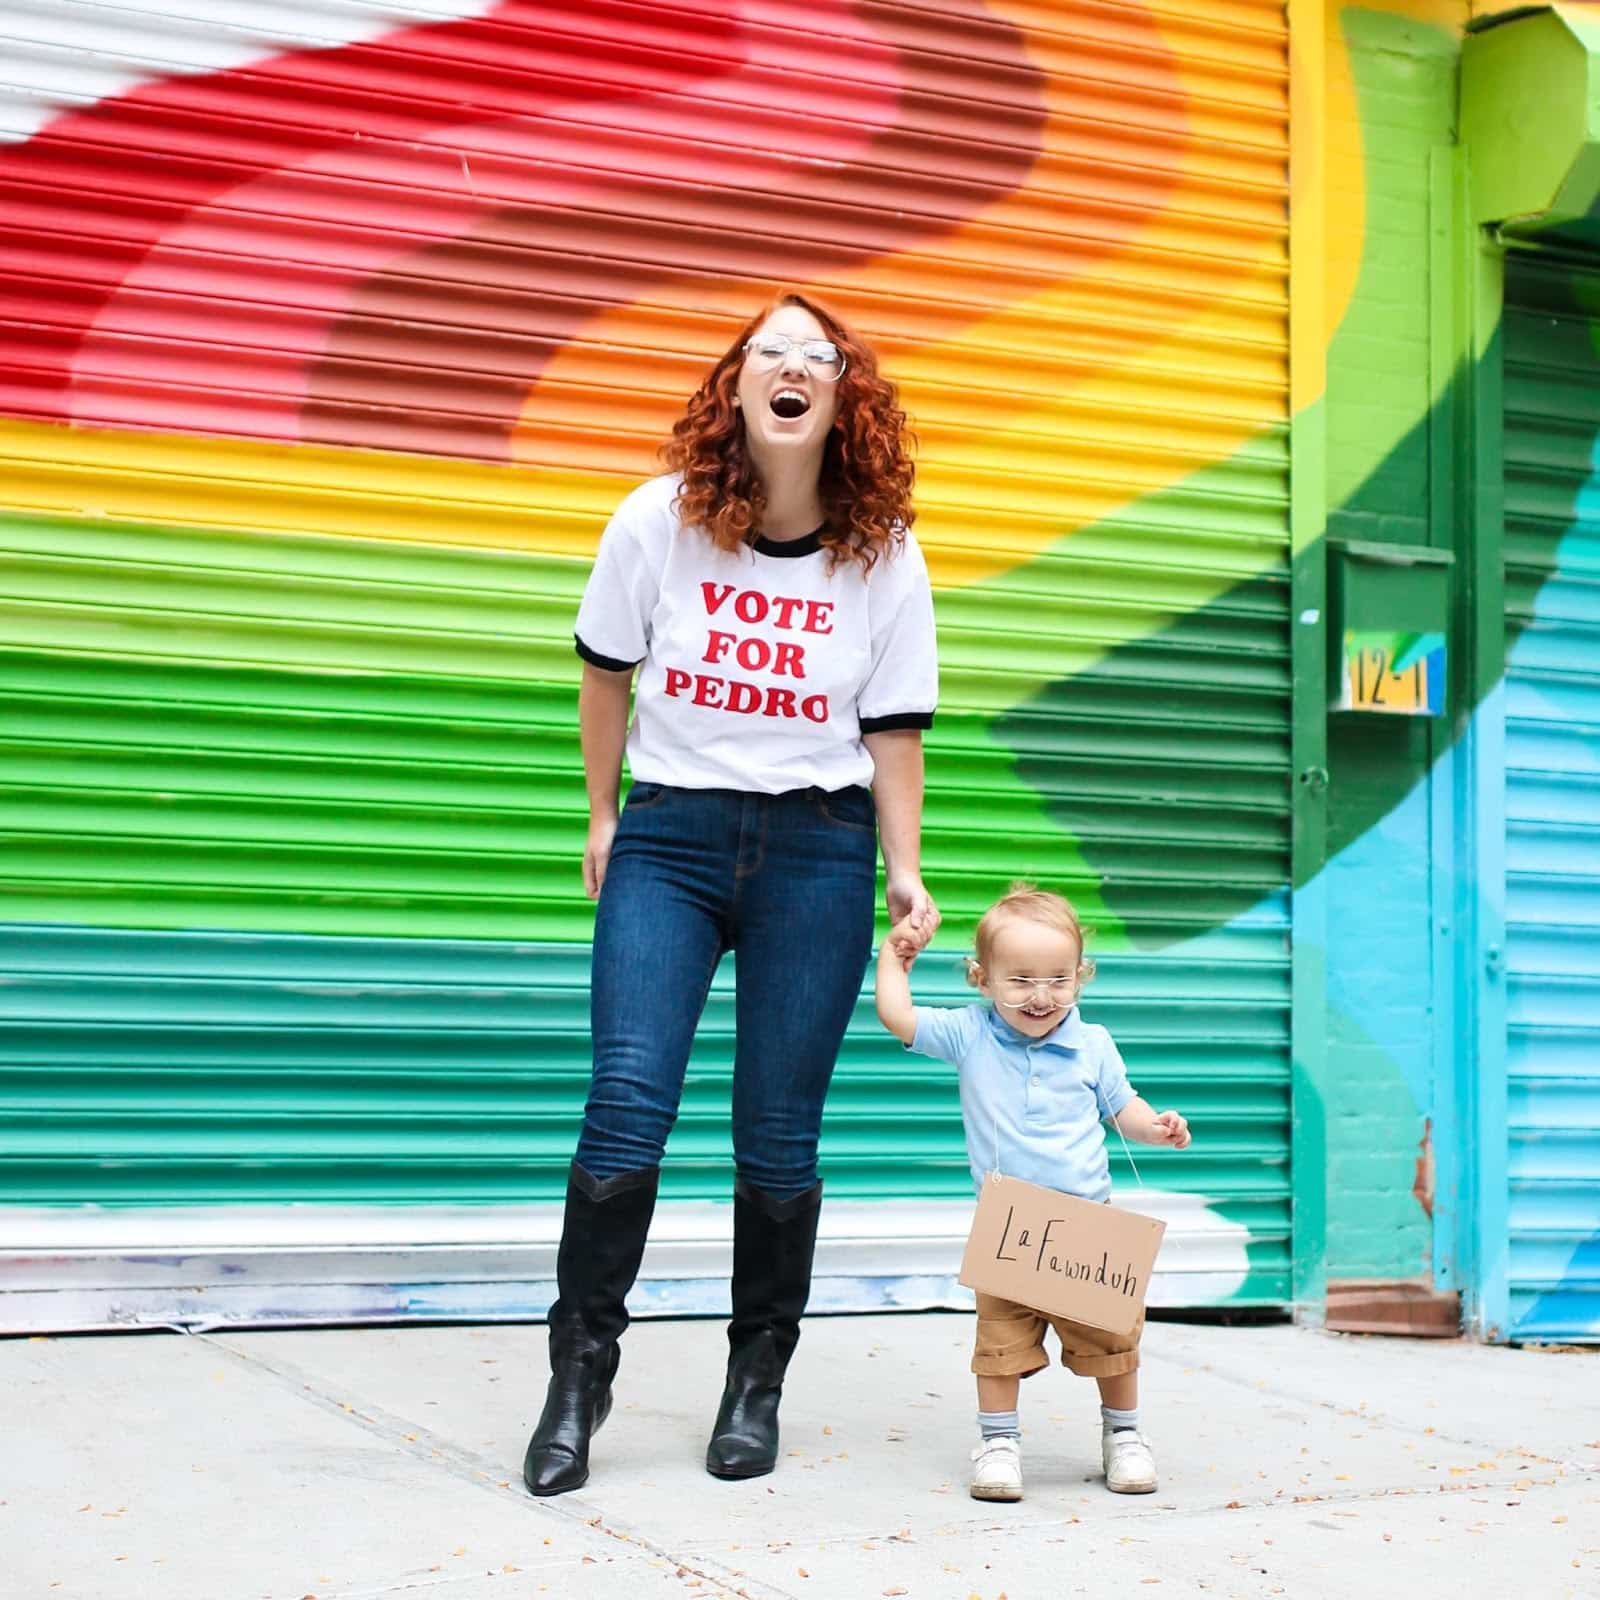 Napoleon Dynamite & Kip Halloween Costume - Check out these 40 cute and creative Halloween costume ideas for women, couples, families, and friends! #halloween #halloweencostumes #halloweencostumeideas